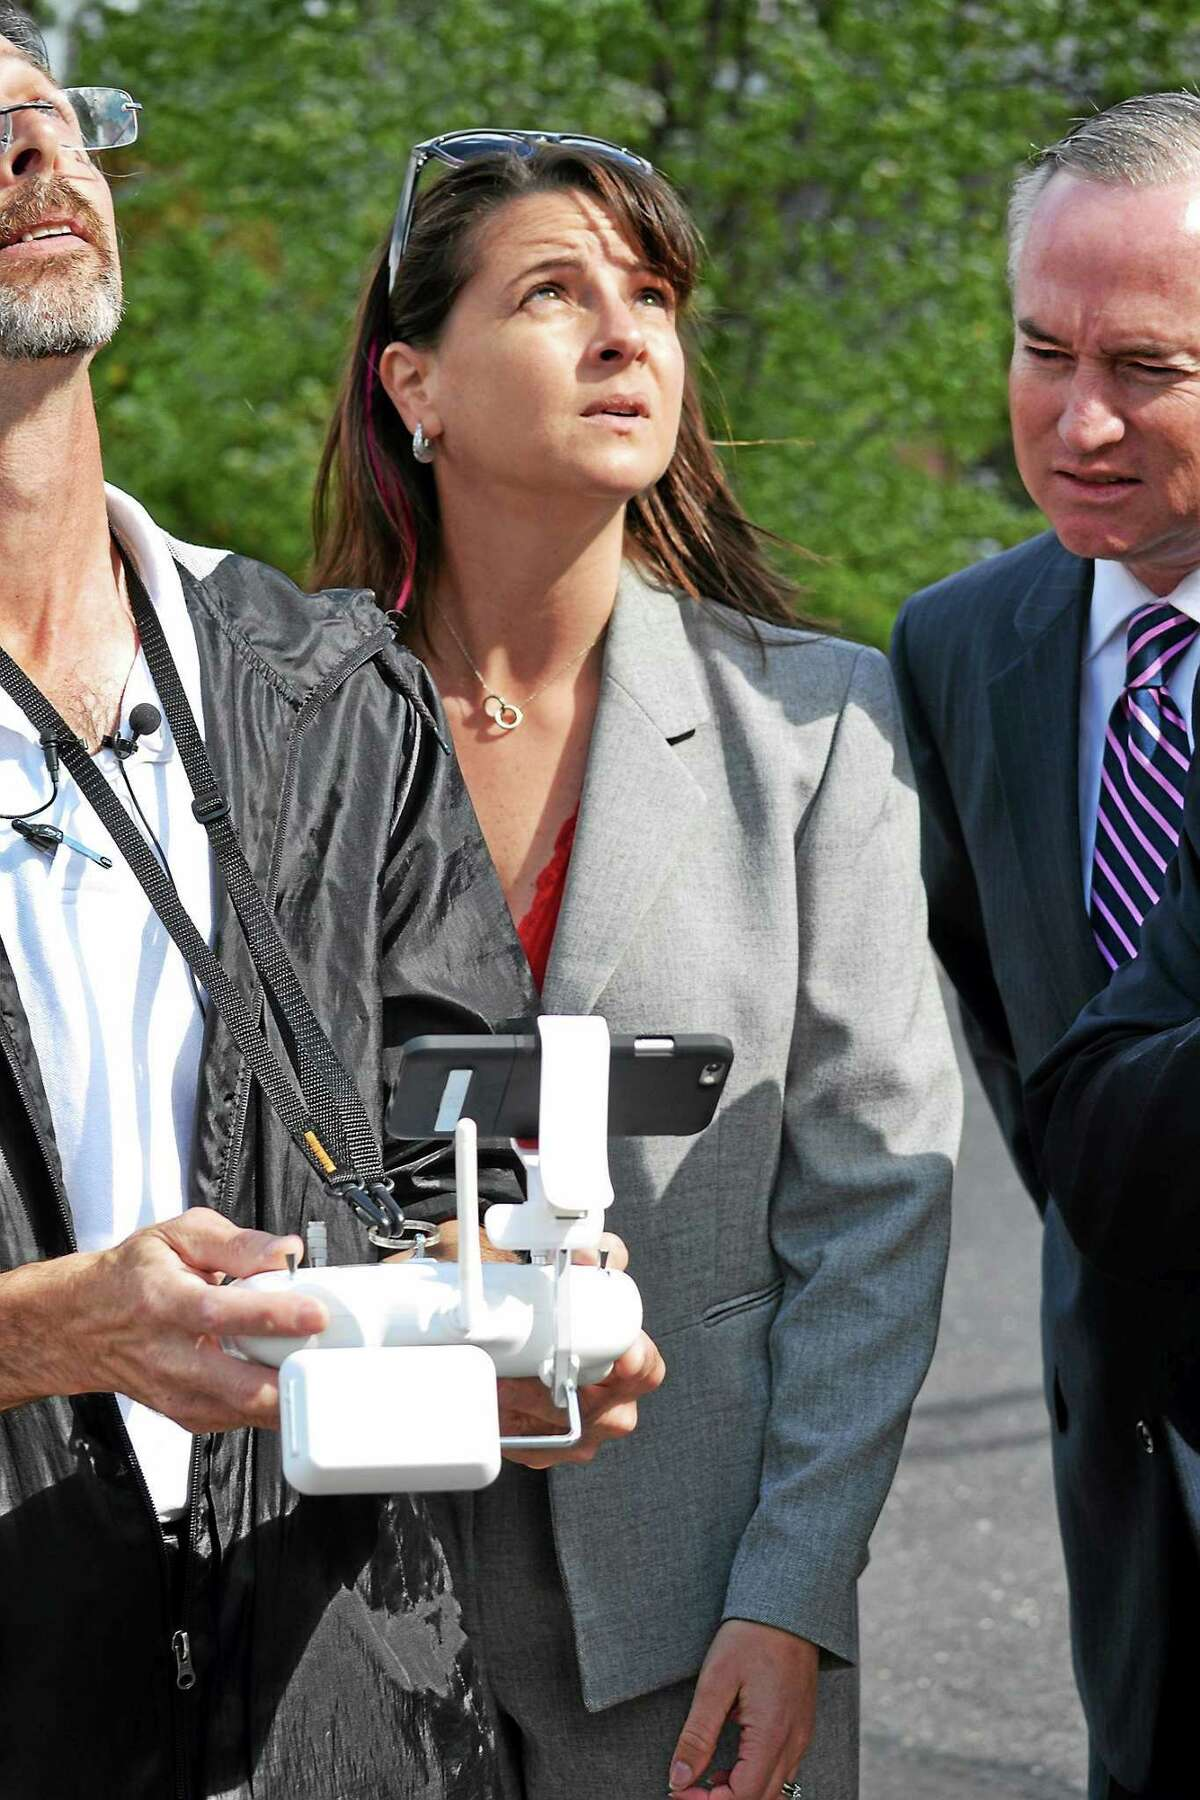 State Rep. Christie Carpino, R-Cromwell and Portland, took part in a drone demonstration at the State Capitol in Hartford earlier this month.